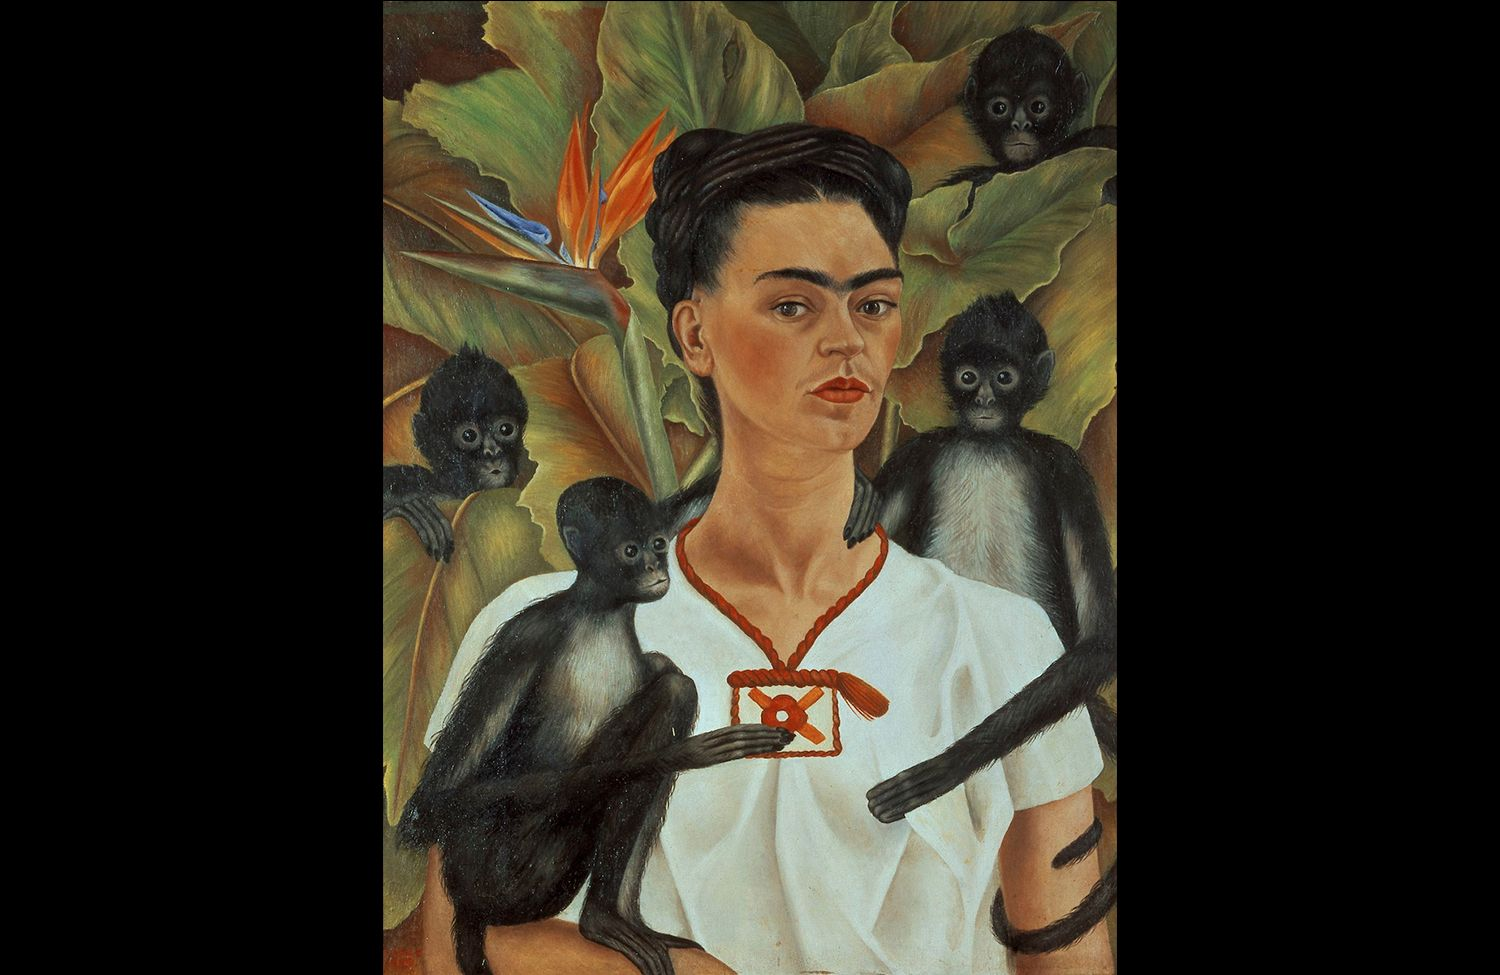 Frida Kahlo: Appearances Can Be Deceiving 5